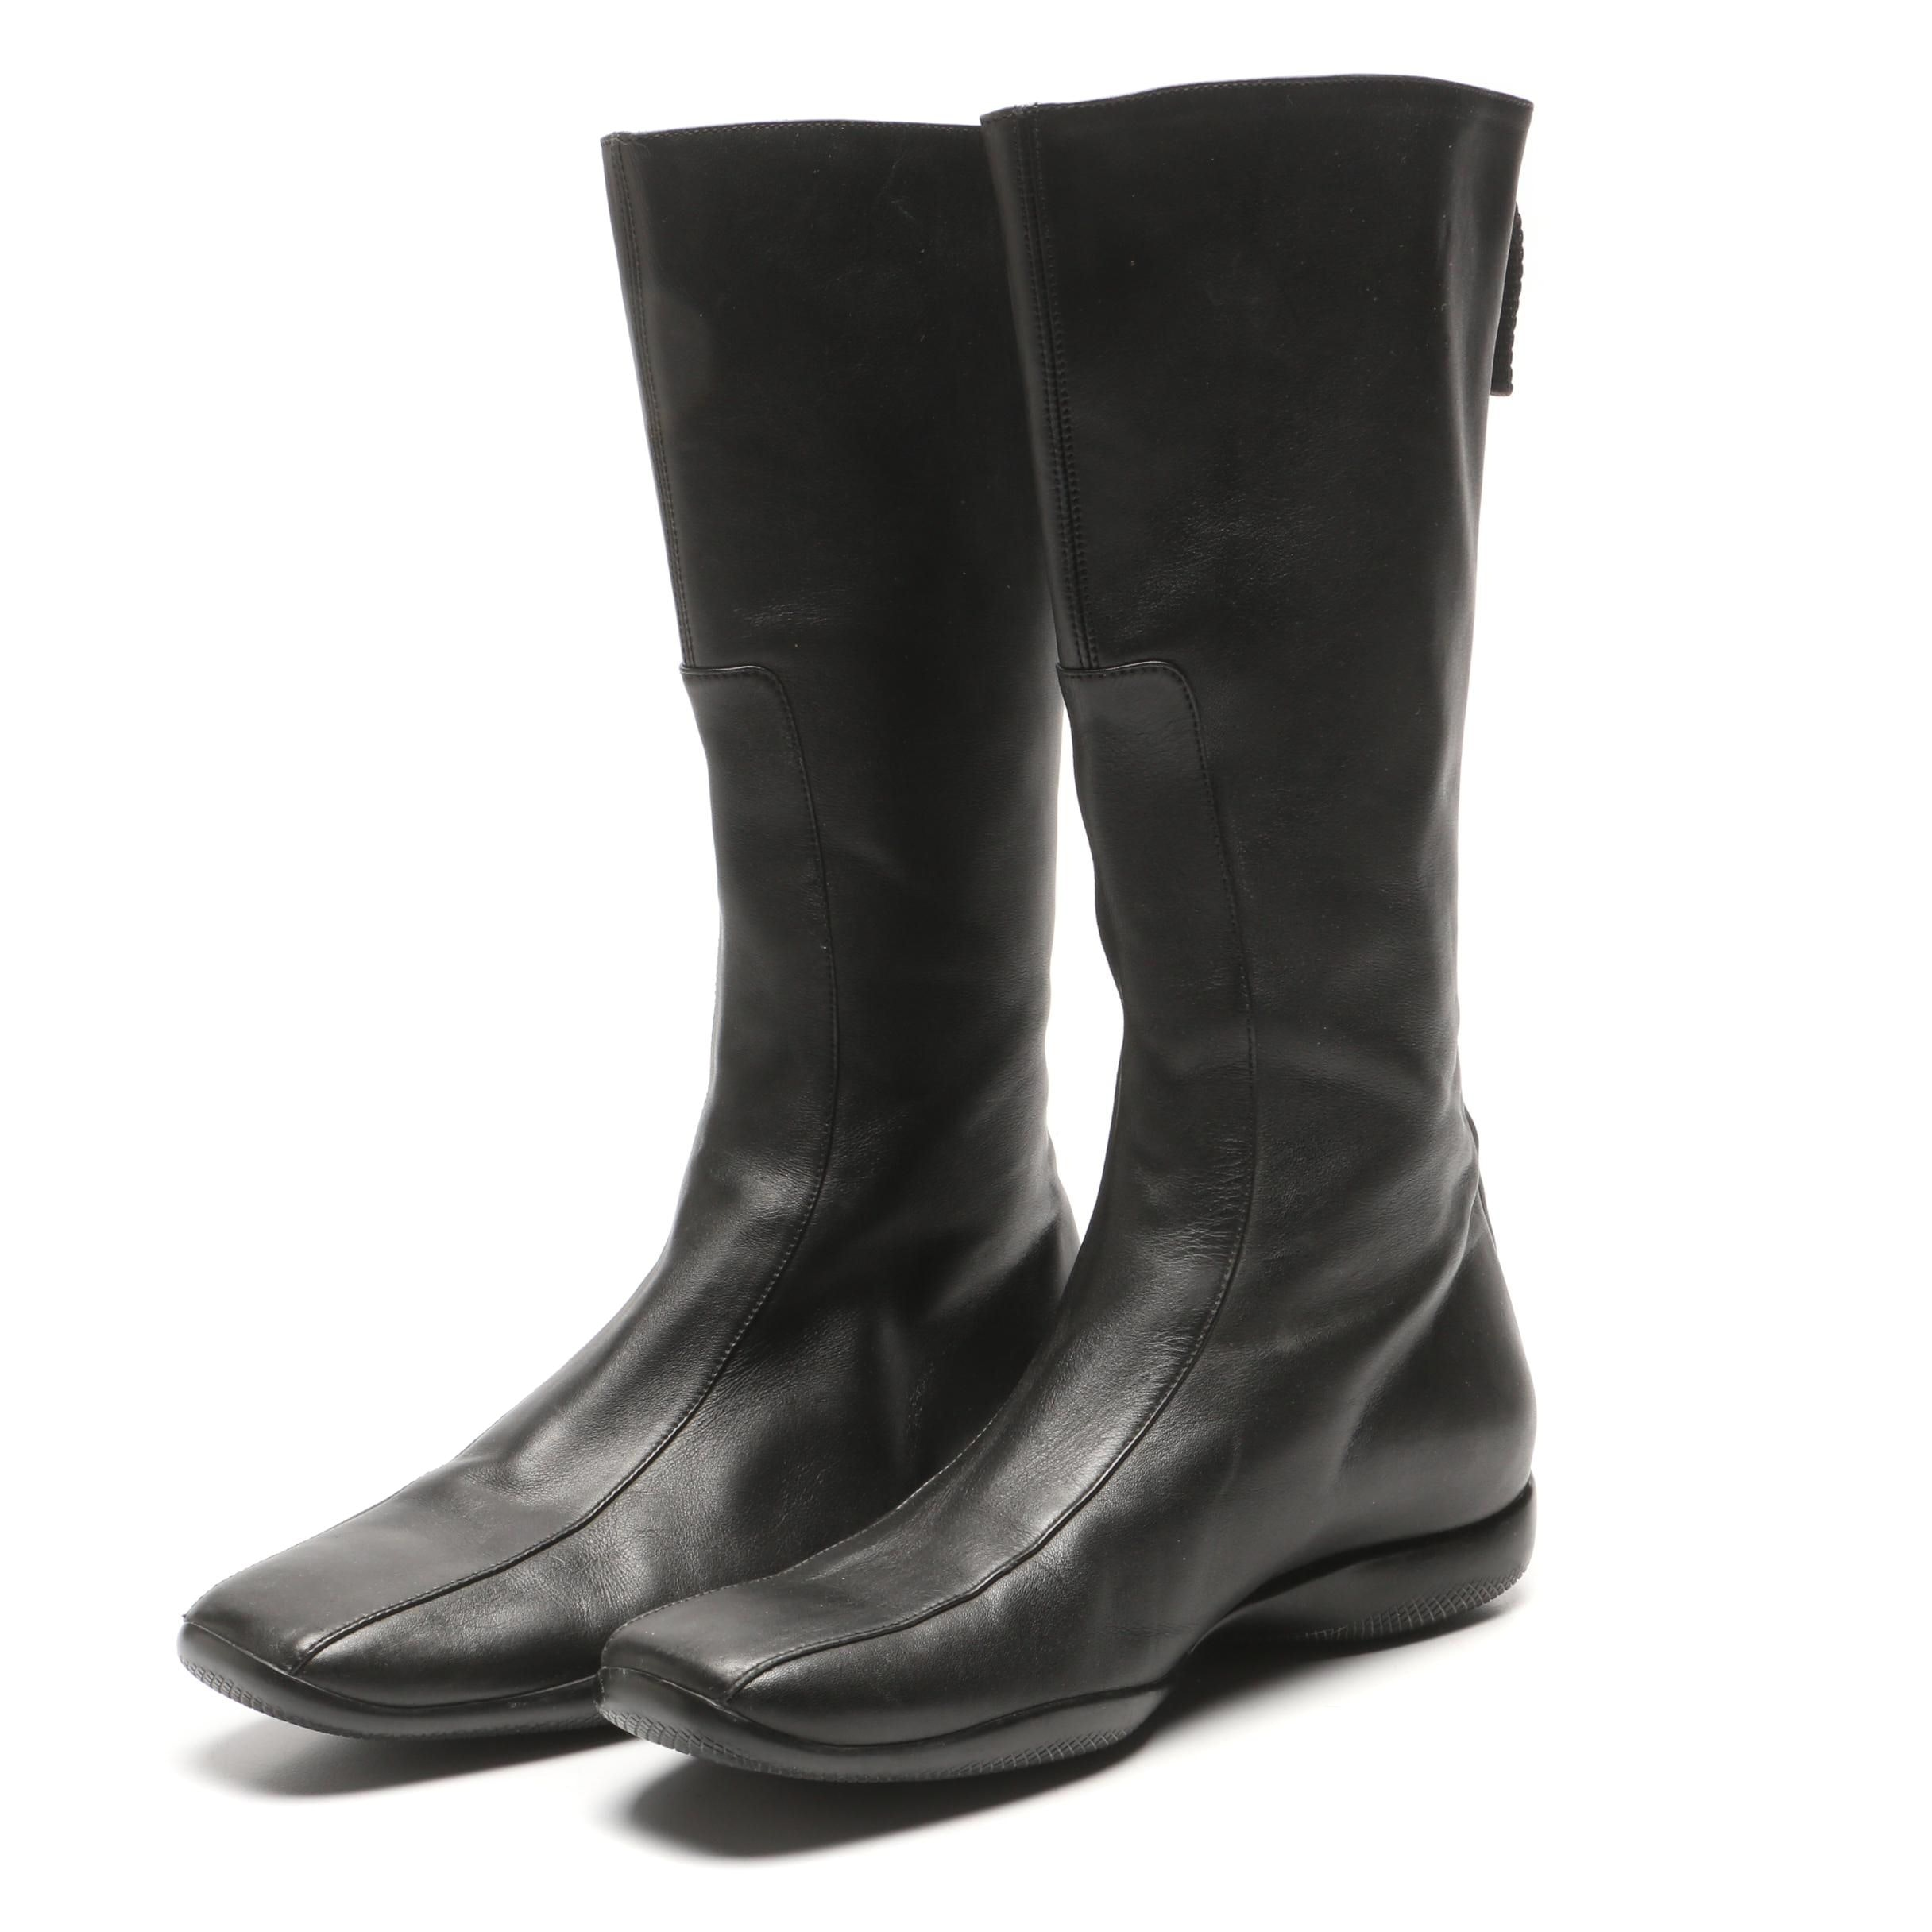 Prada Black Leather Boots, Made in Italy